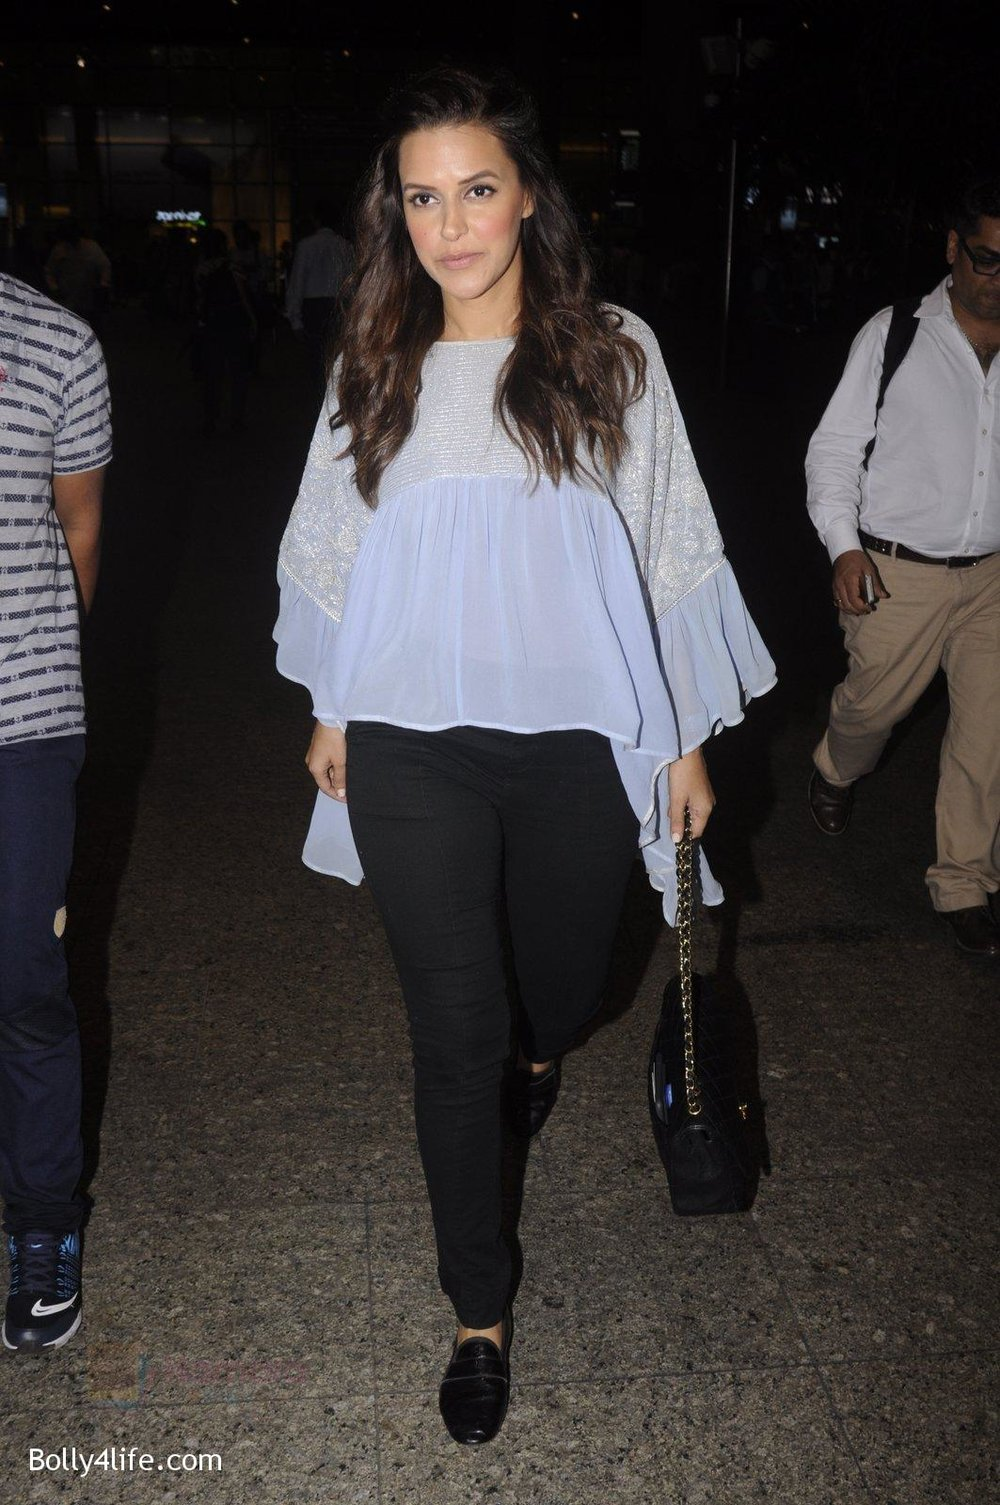 Neha-Dhupia-snapped-at-airport-on-20th-Sept-2016-39.jpg